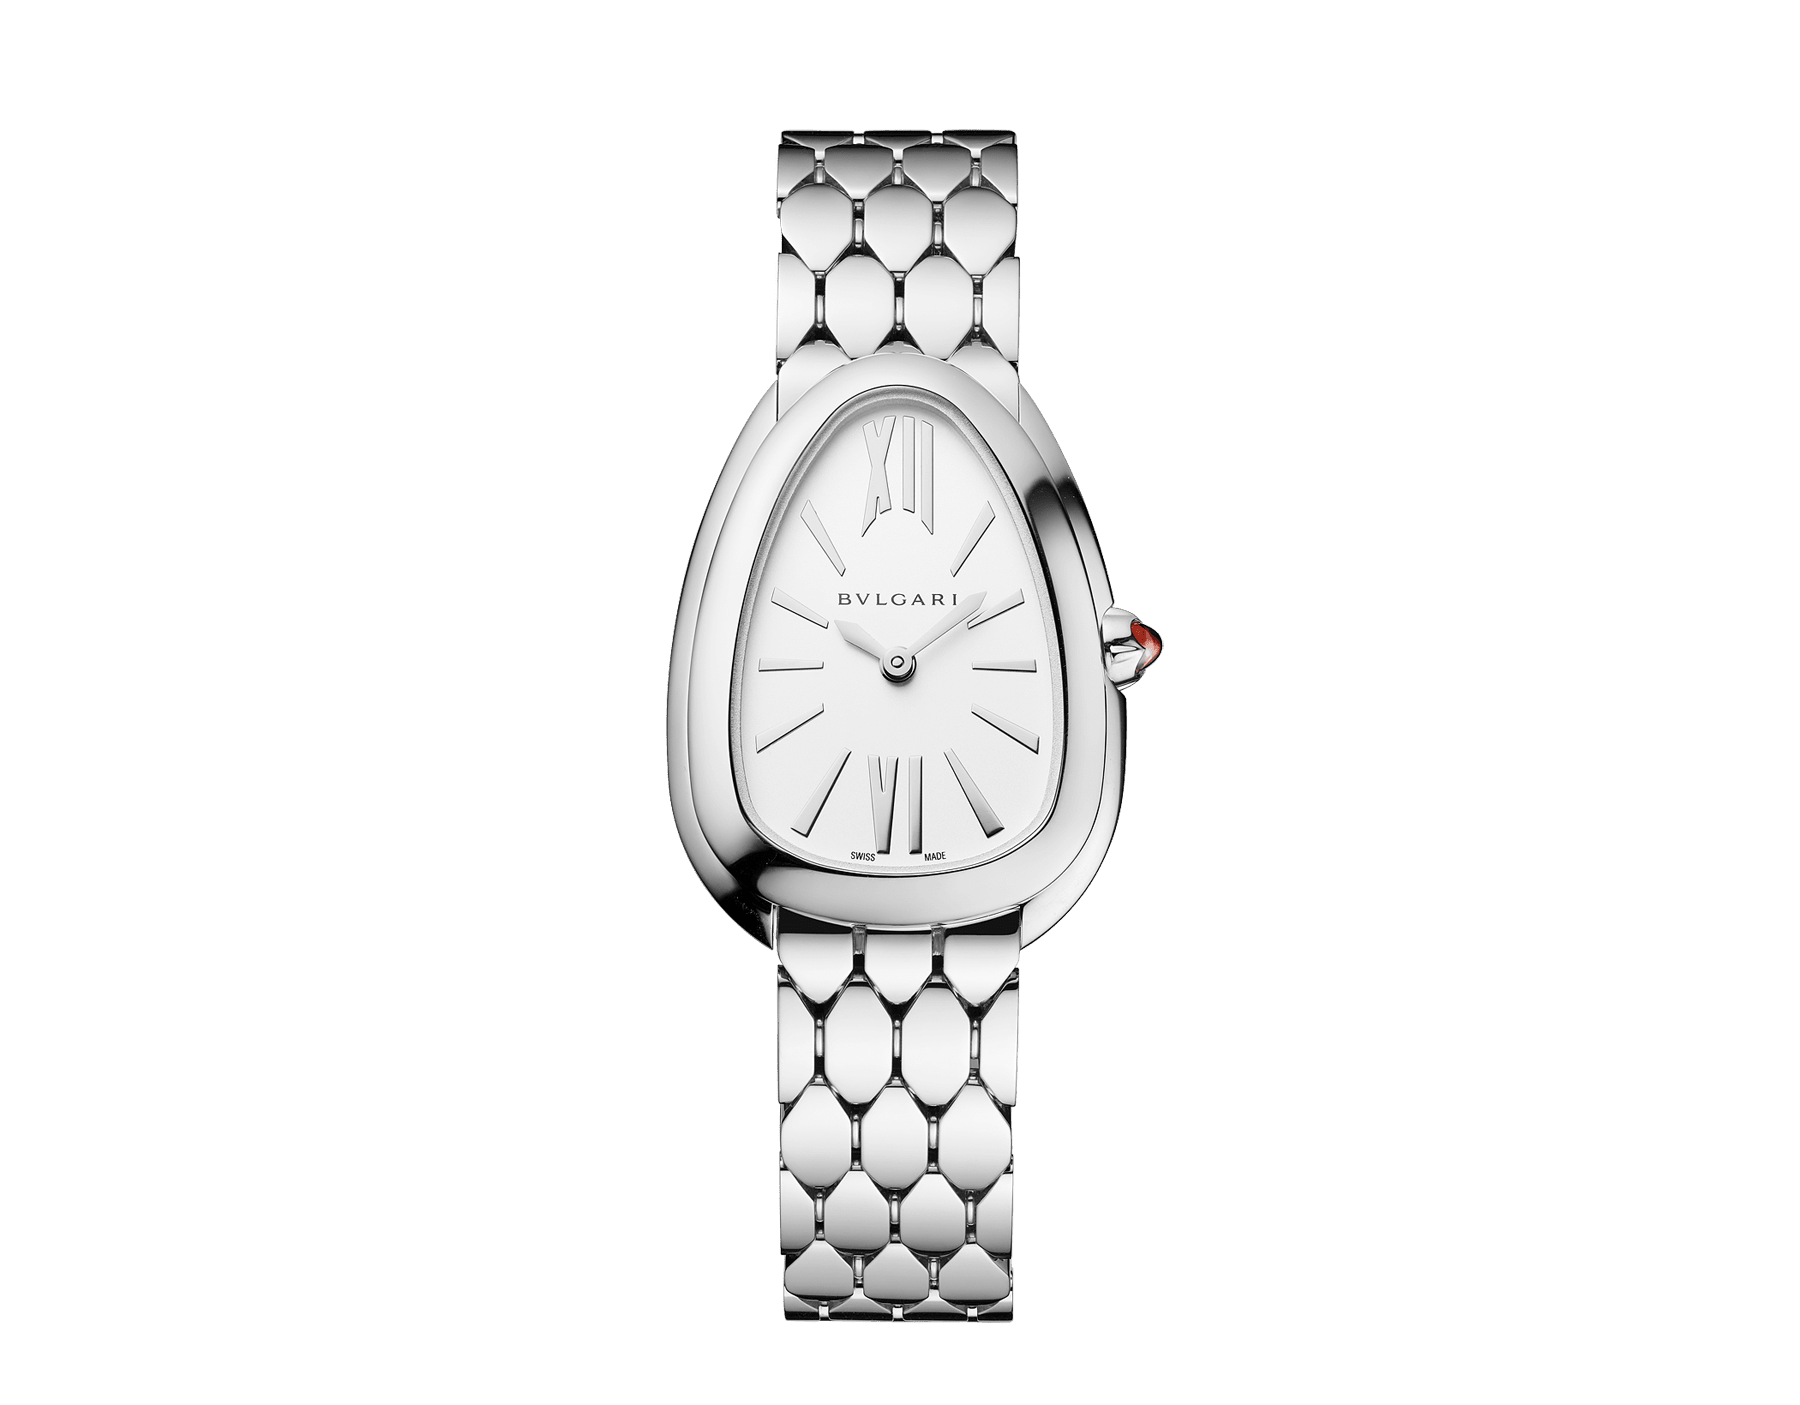 Serpenti Seduttori watch with stainless steel case, stainless steel bracelet and a white silver opaline dial. 103141 image 1